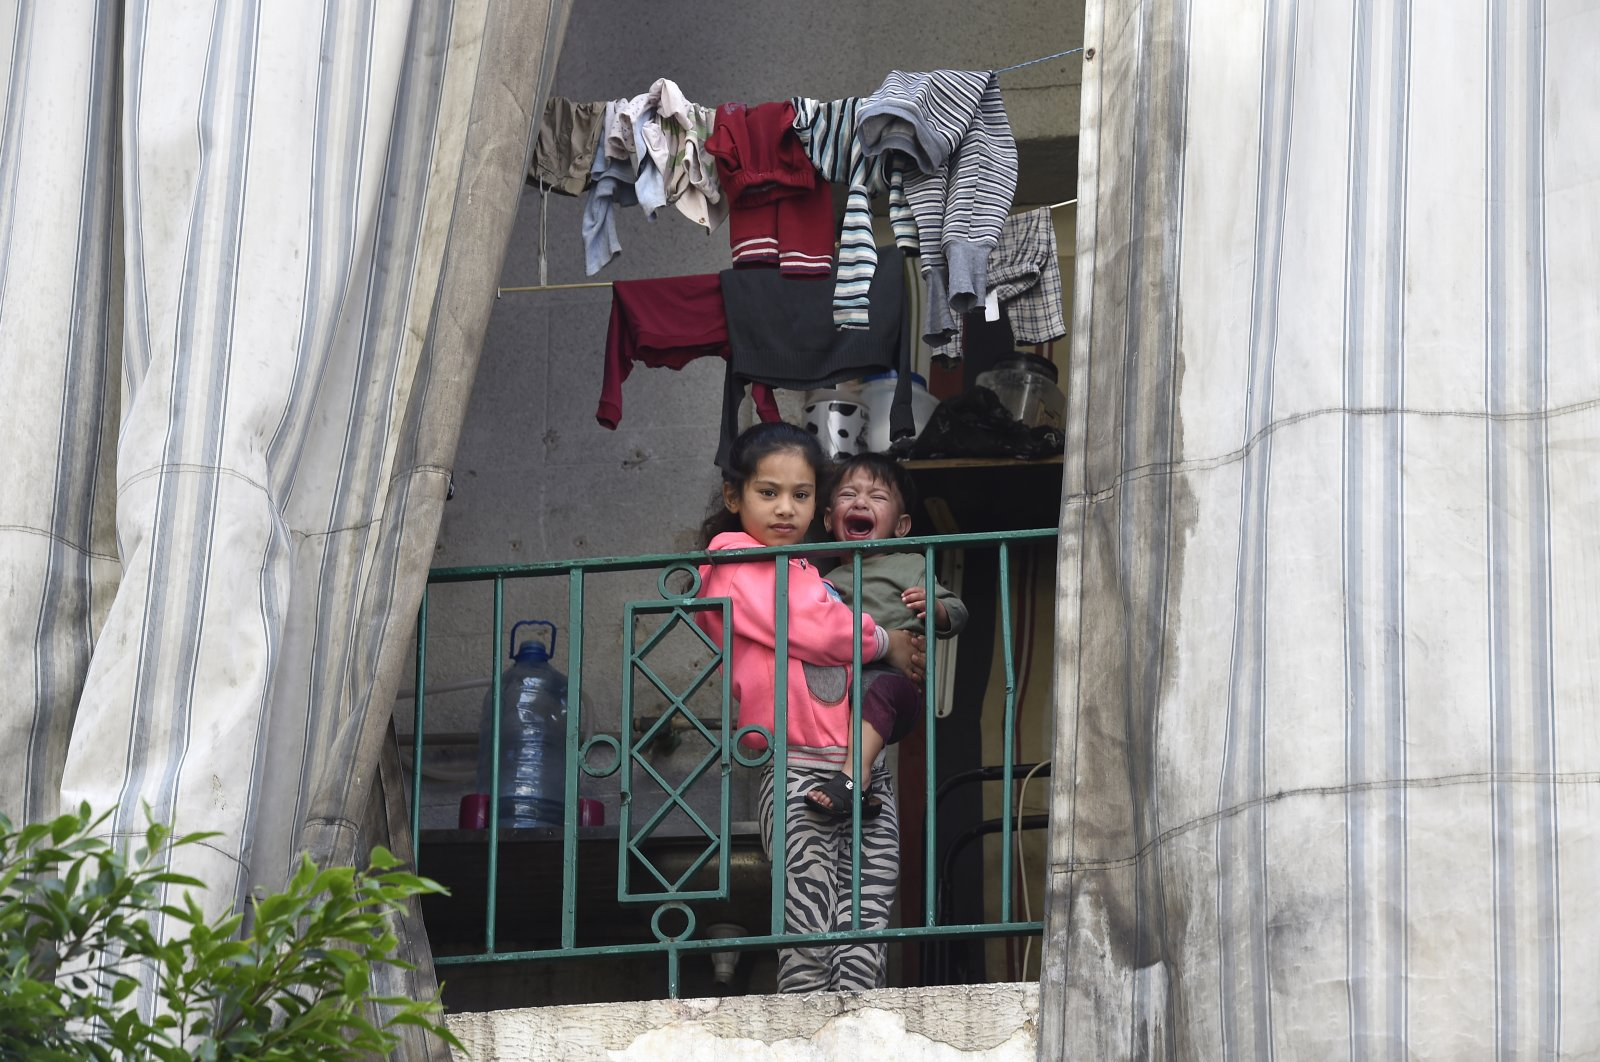 A Syrian refugee girl holds her crying younger brother as she looks on from a balcony in a residential building where Syrian refugees who have tested positive for the novel coronavirus remain quarantined in Beirut, Lebanon, May 20, 2020. (EPA Photo)